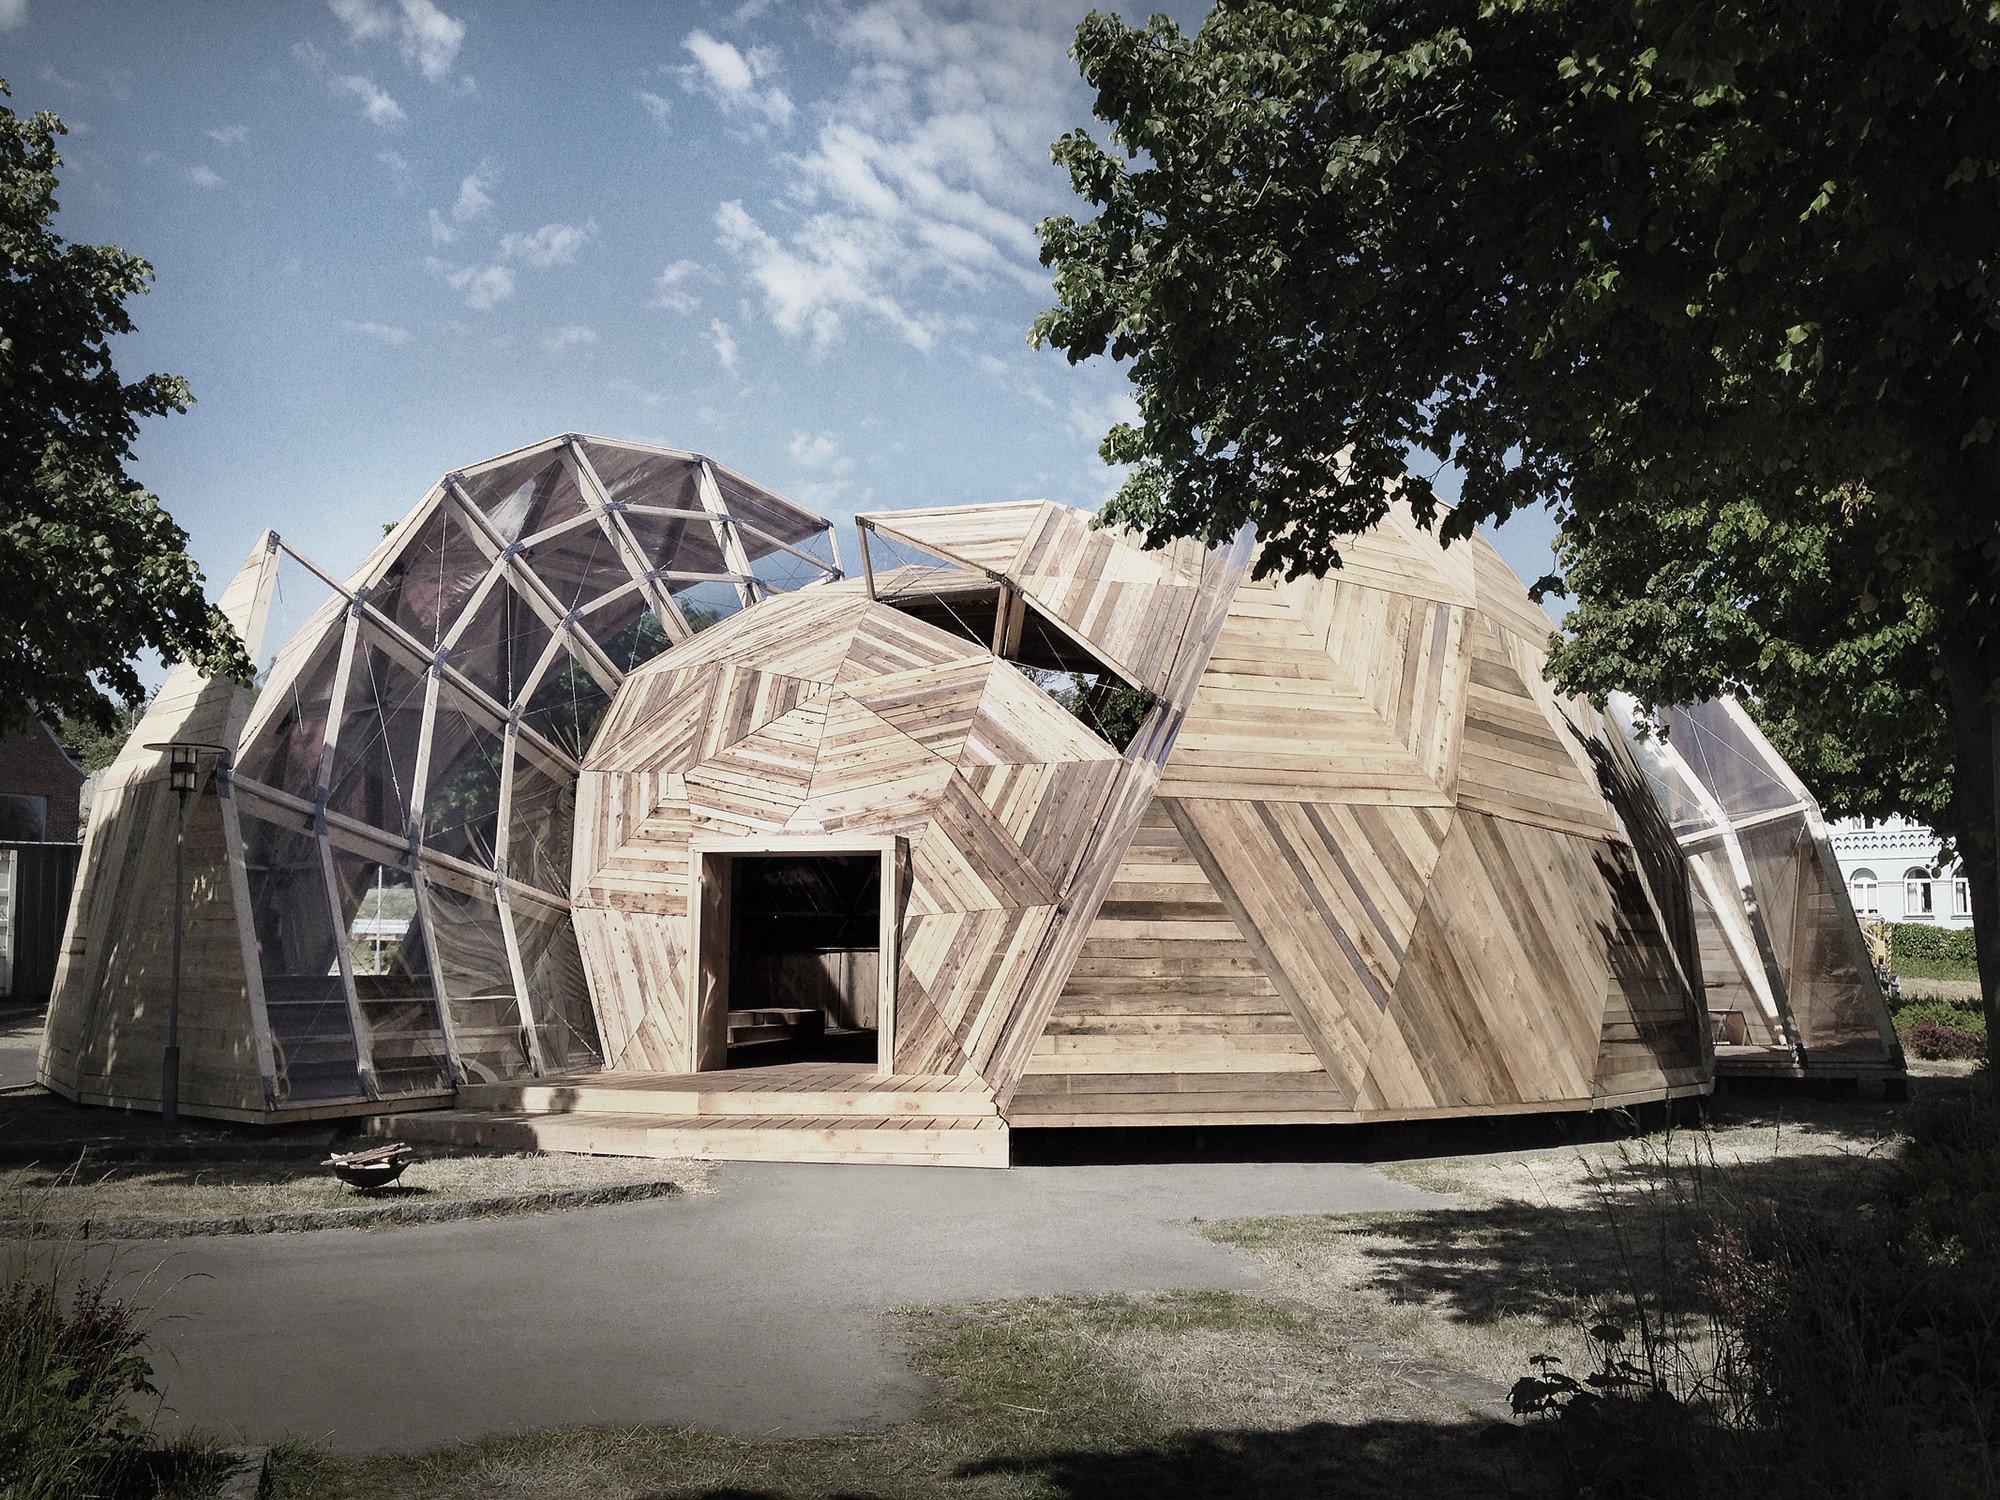 Tejlgaard & Jepsen Transform a Temporary Geodesic Dome ...